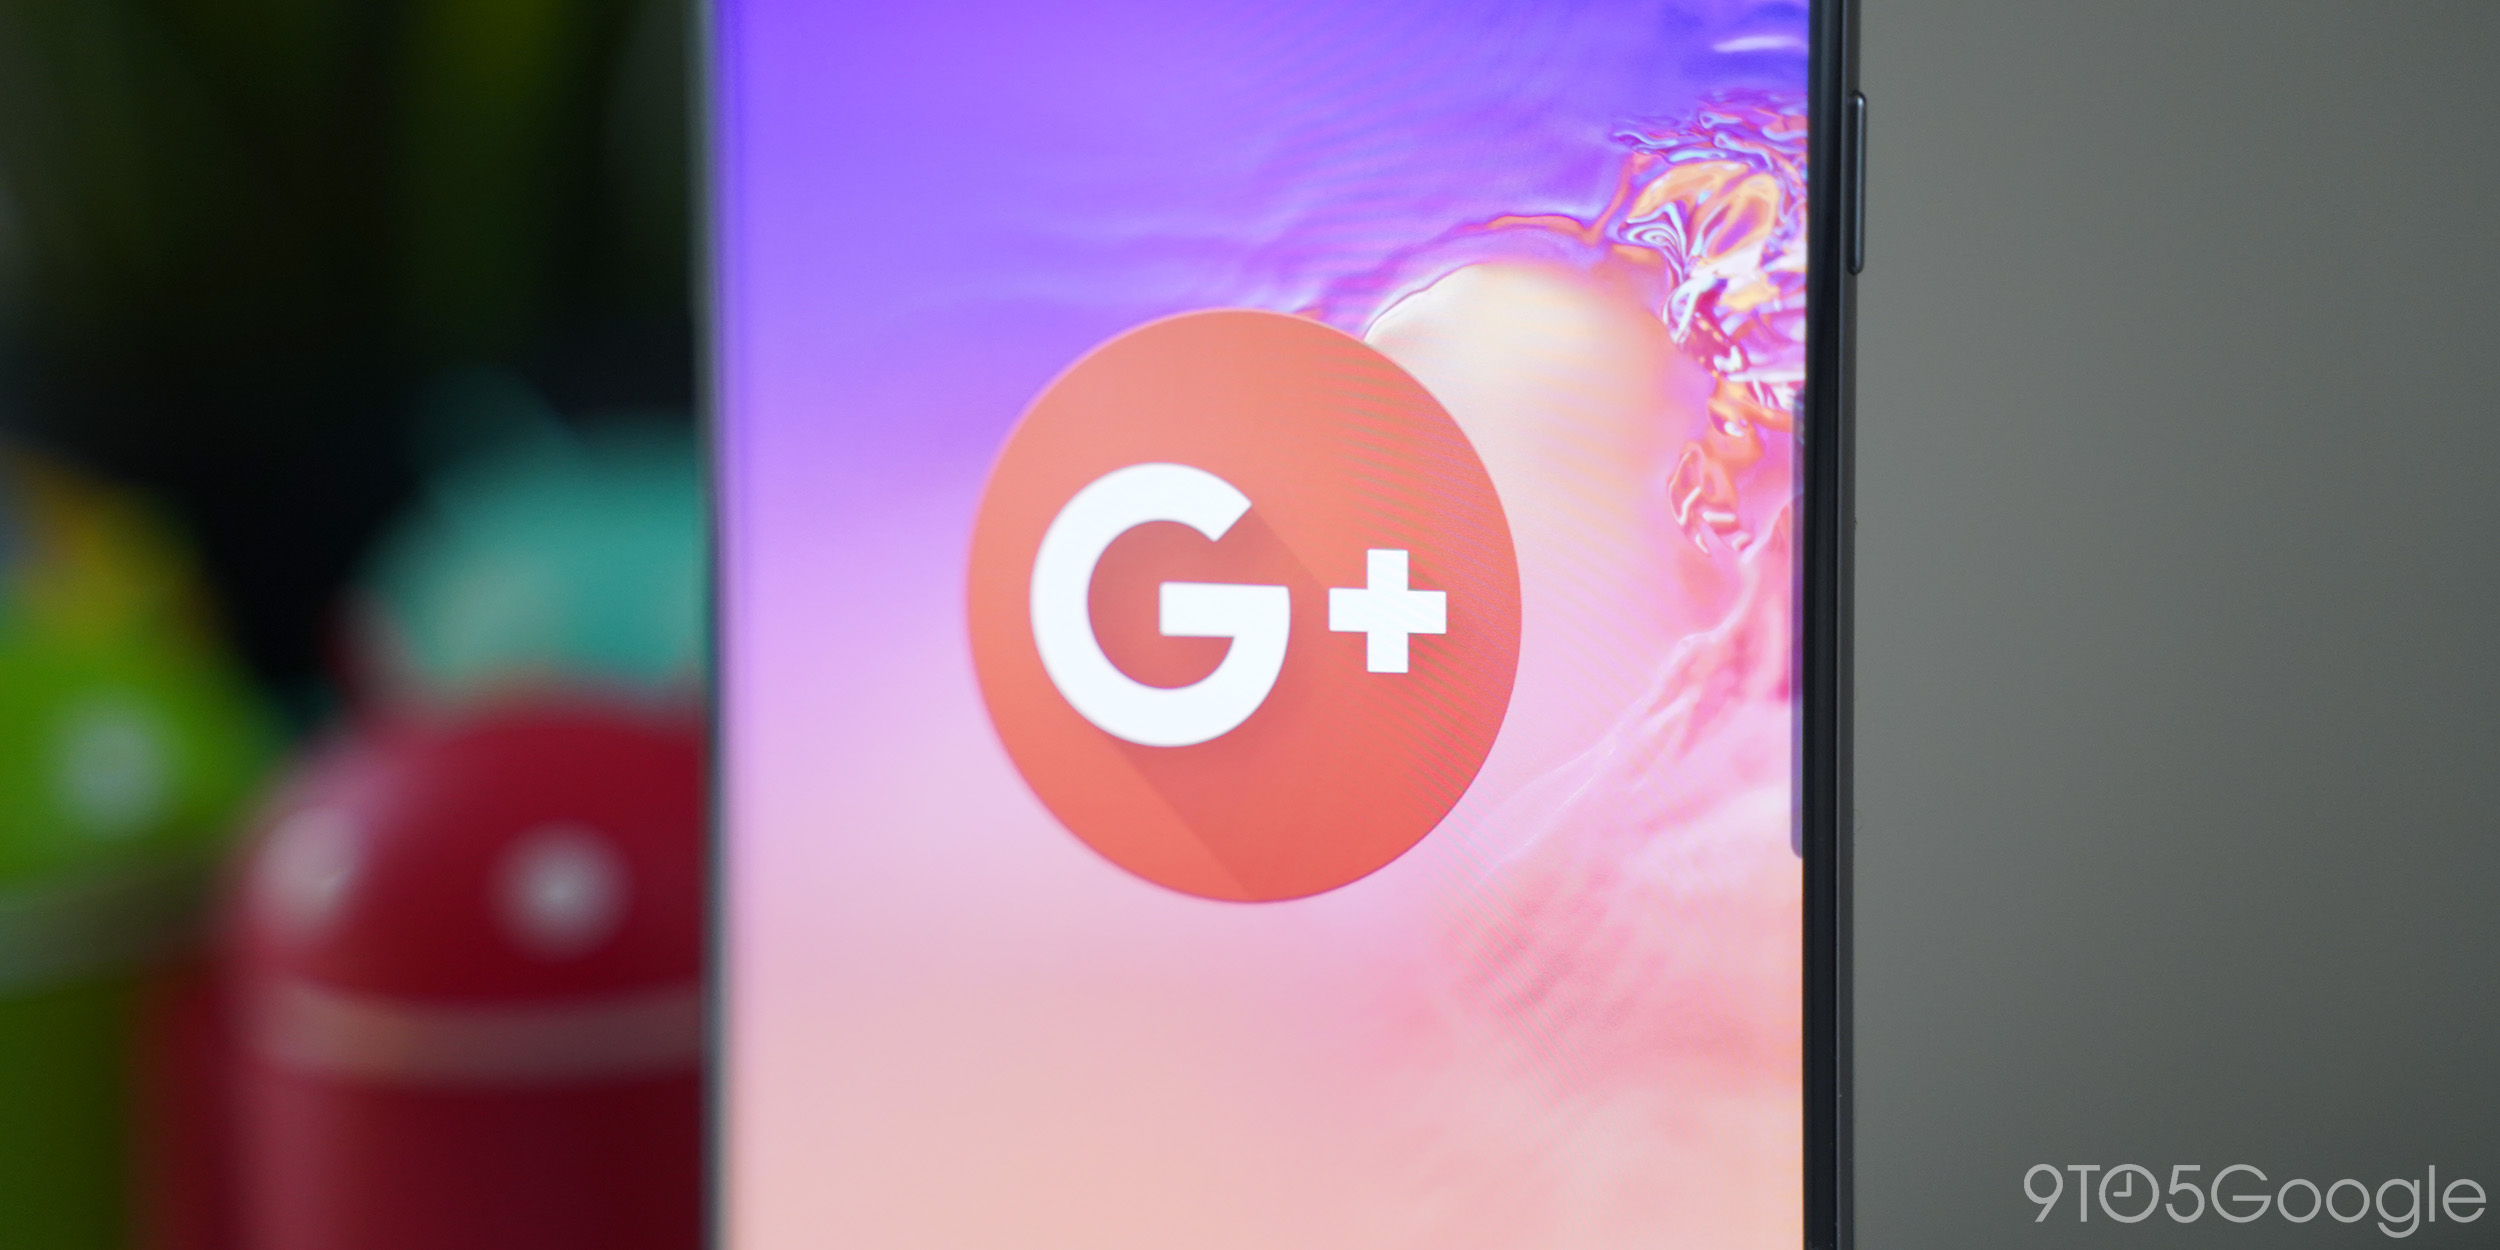 Many receive notice of Google+ class action lawsuit